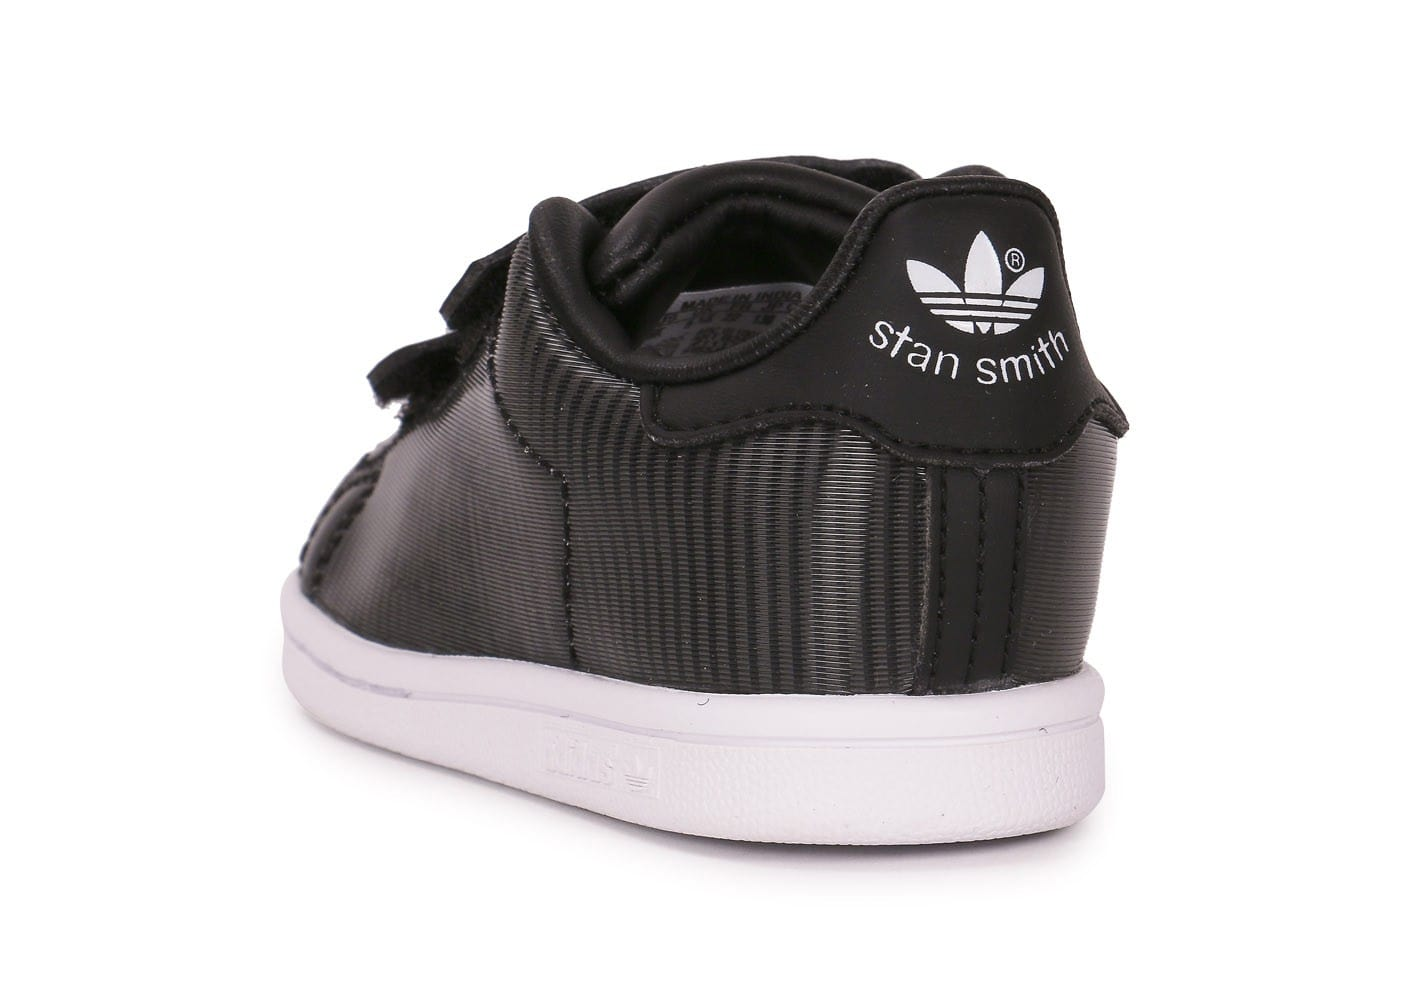 adidas stan smith star wars b b noire chaussures adidas chausport. Black Bedroom Furniture Sets. Home Design Ideas